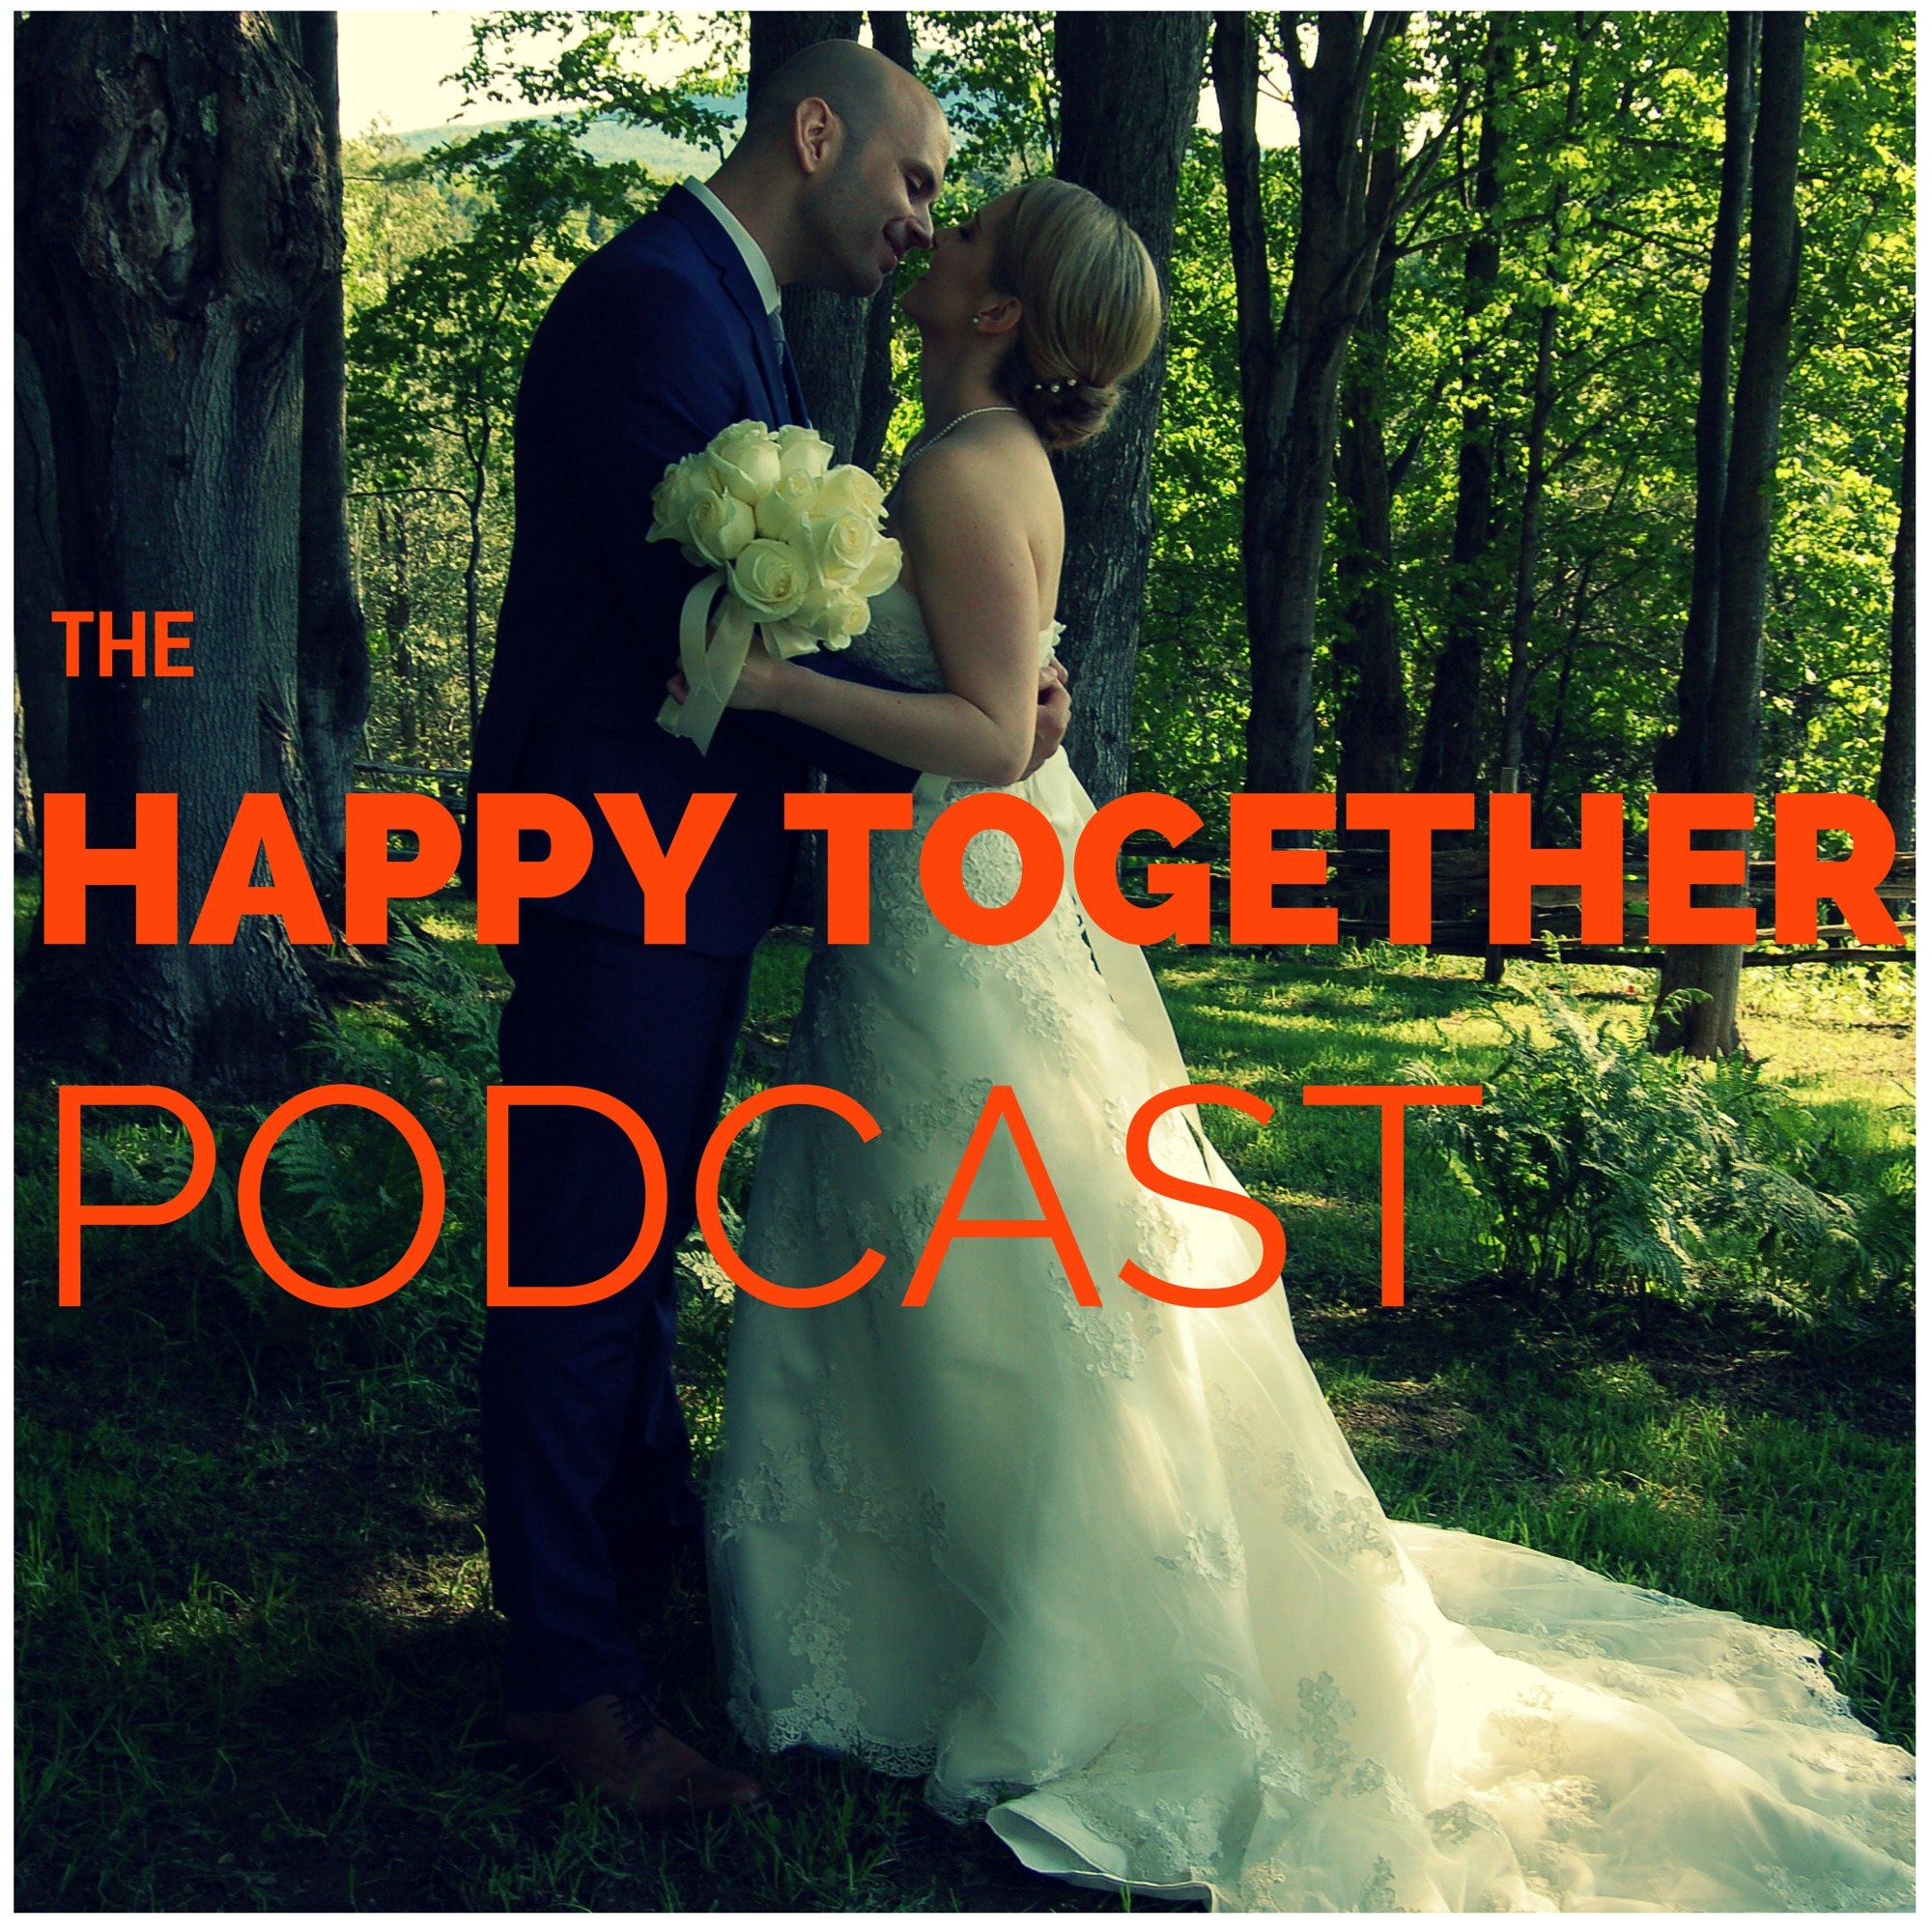 The Happy Together Podcast